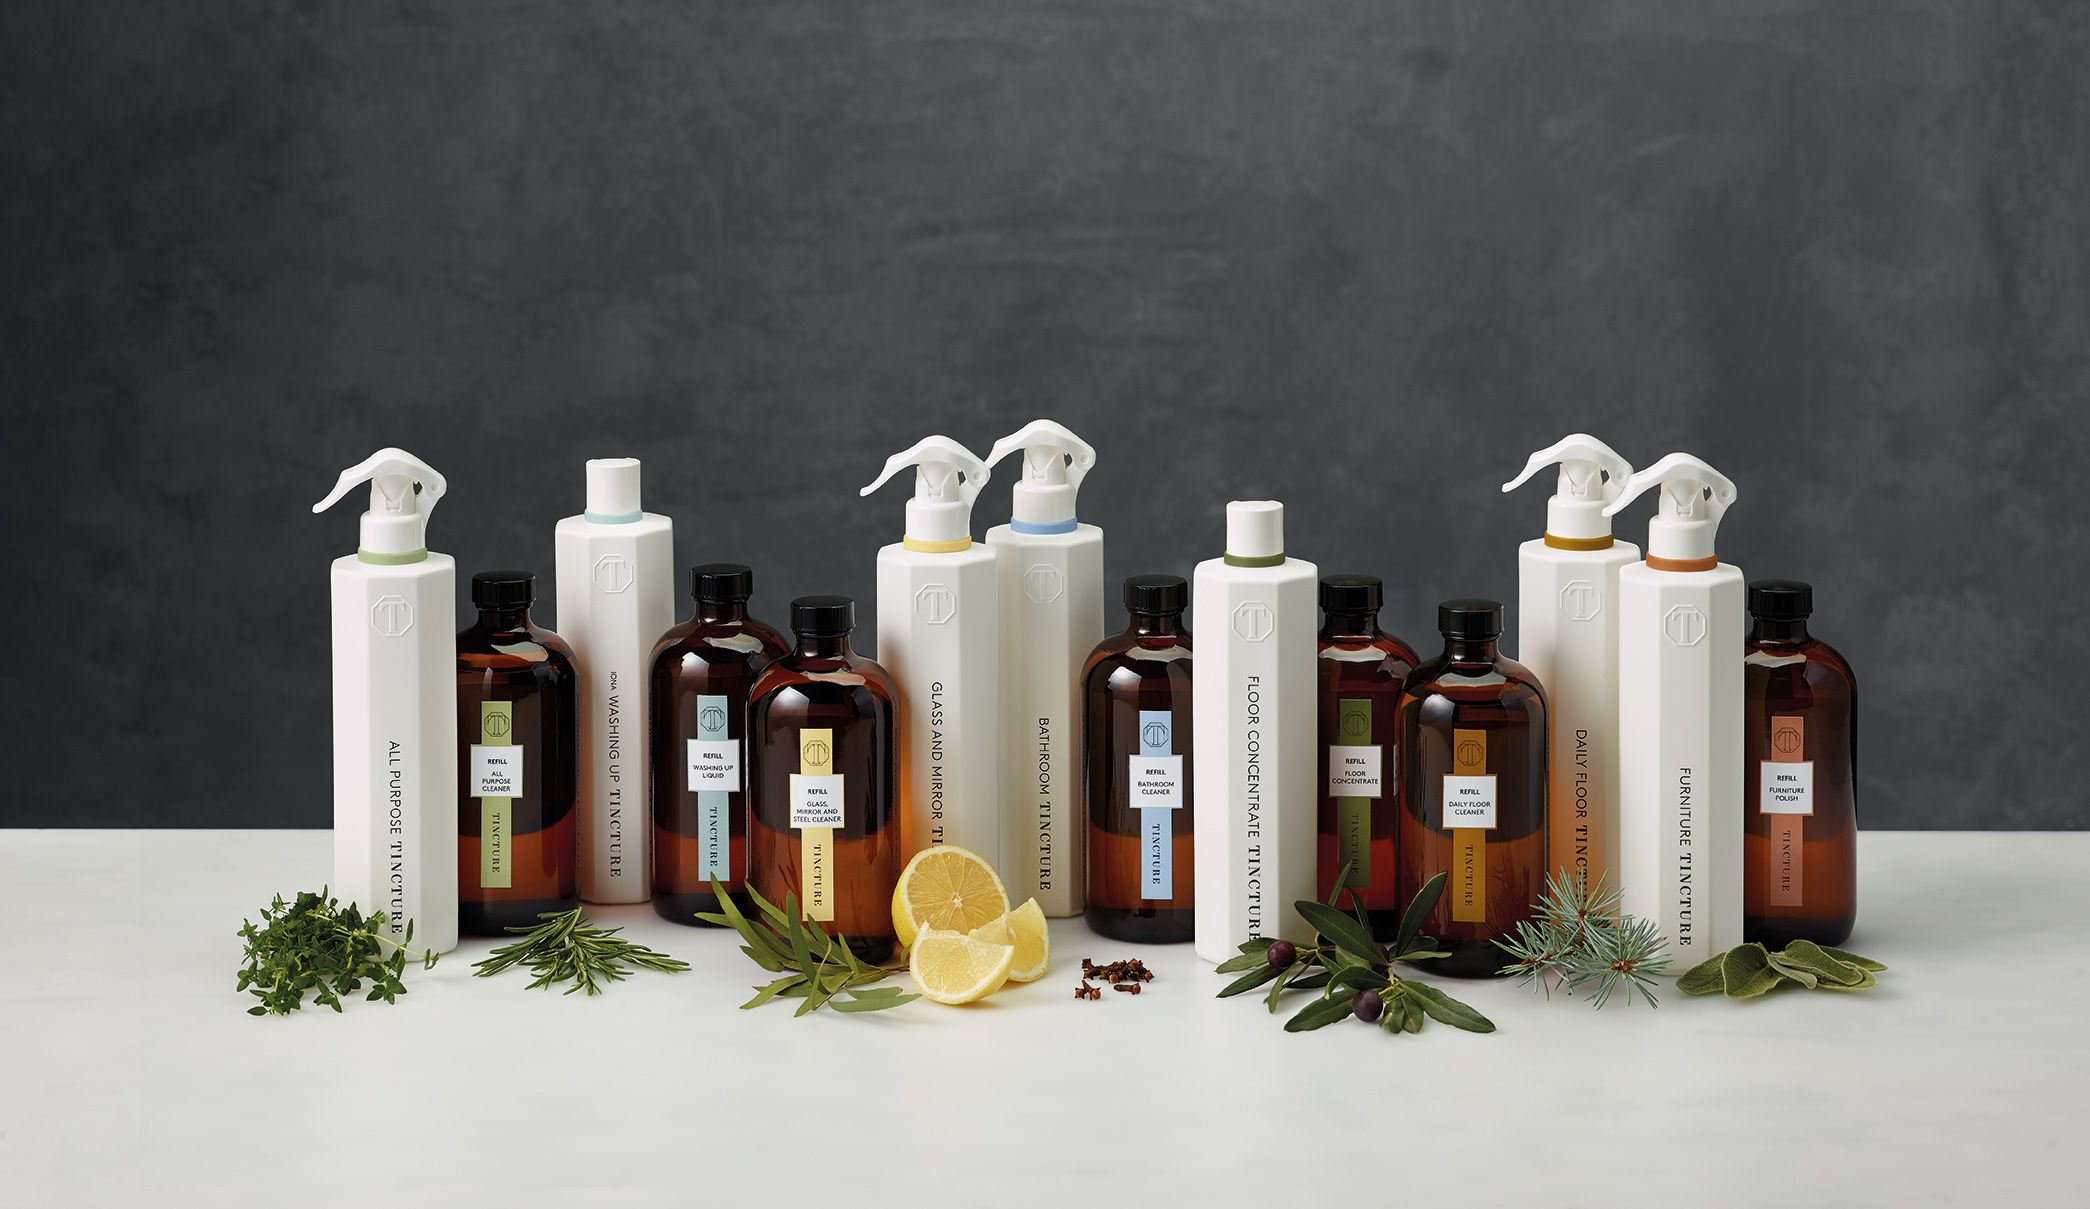 Tincture create 100% natural home cleaning products